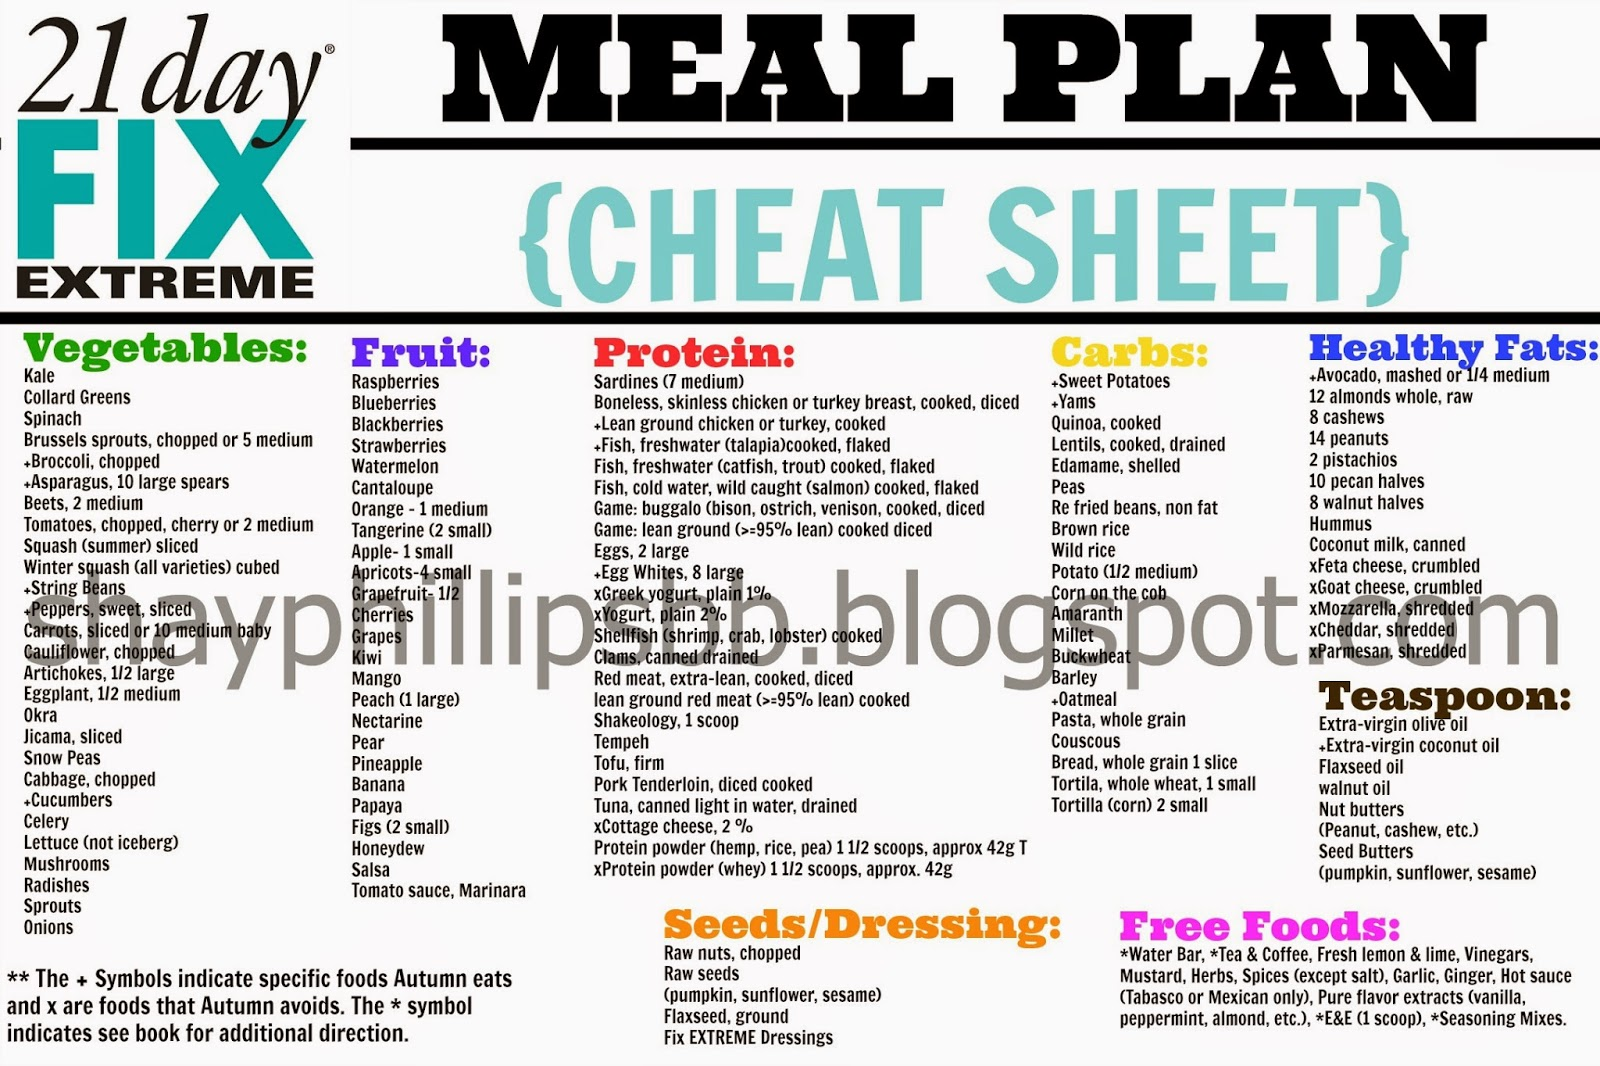 Shay phillips 21 day fix extreme meal plan